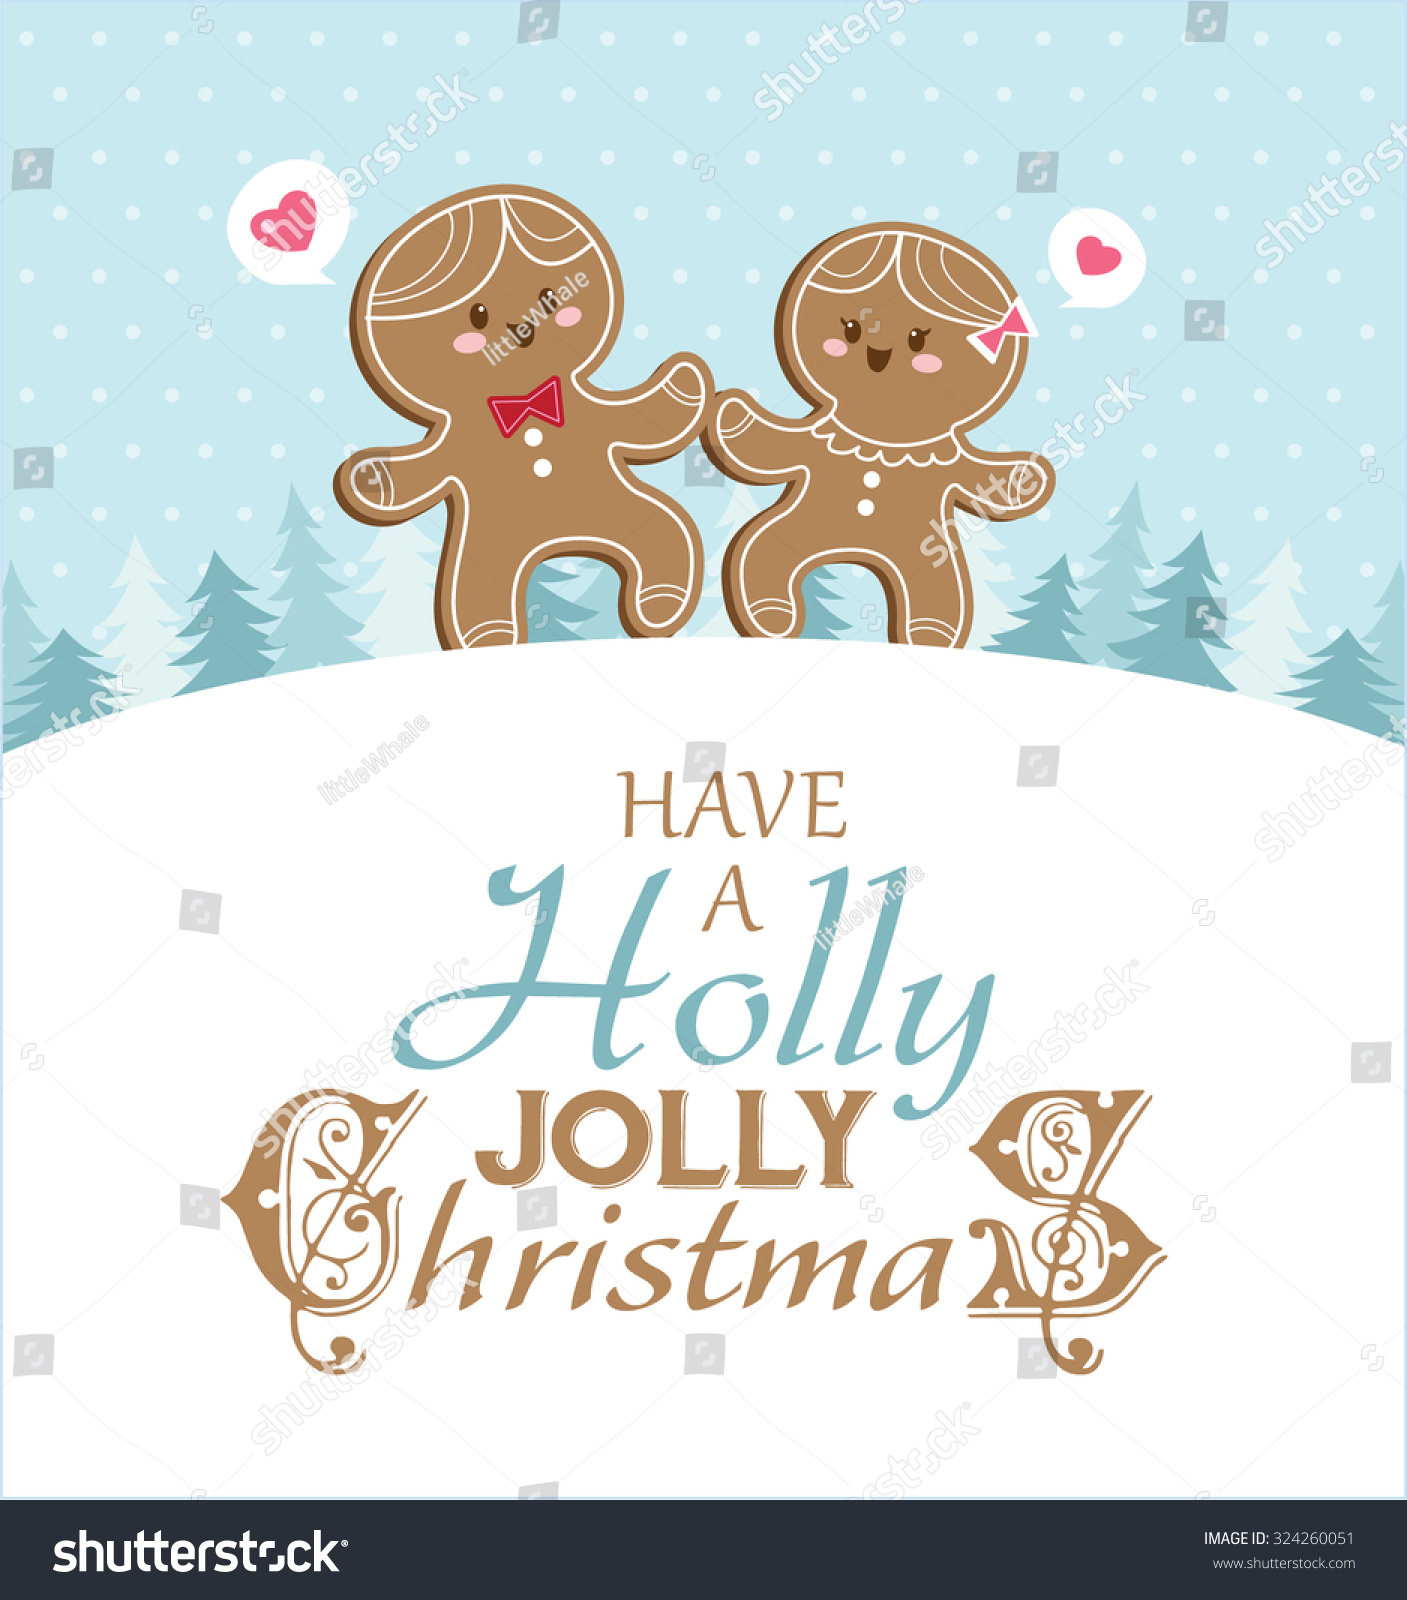 christmas card with gingerbread man and girlfriend - Christmas Card For Girlfriend